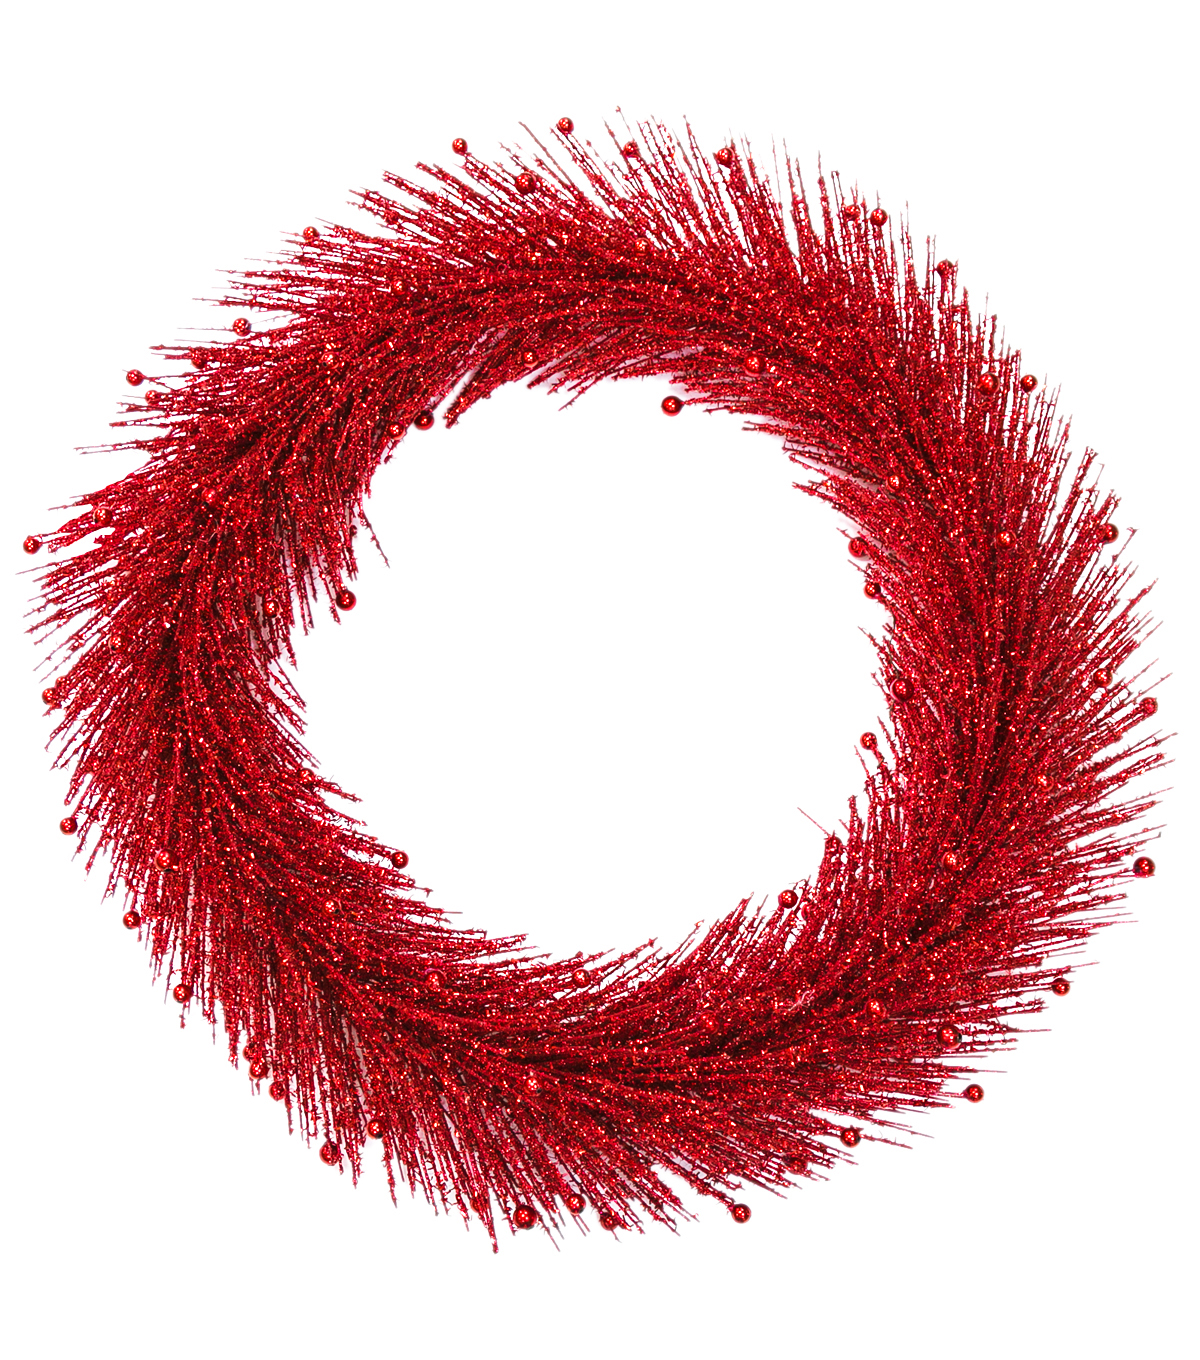 Blooming Holiday Christmas 24'' Glitter Pine Wreath Red                      Blooming Holiday Christmas 24'' Glitter Pine Wreath Red by Blooming Holiday